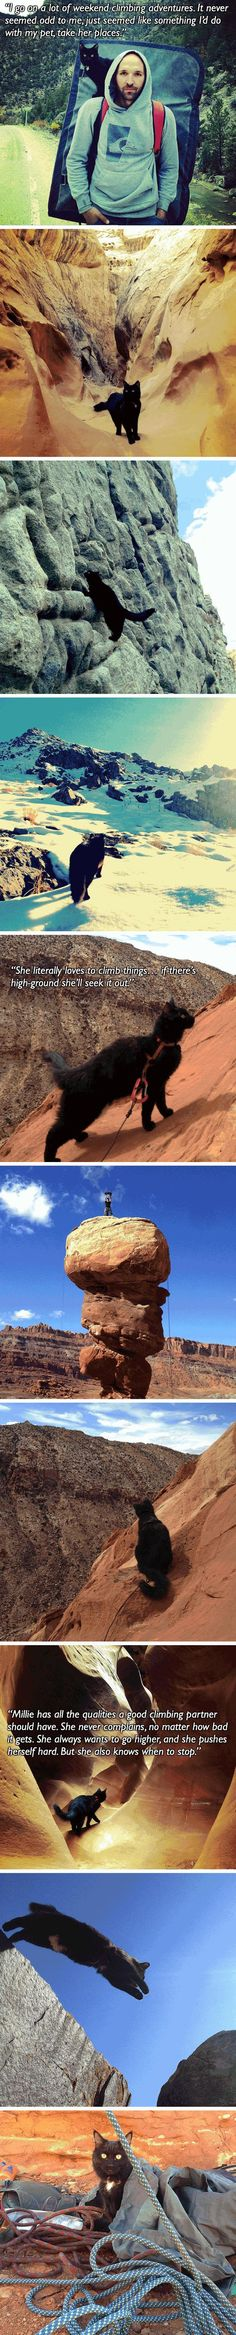 Meet Millie, the mountain climbing cat. I love this. What an awesome pet!!!